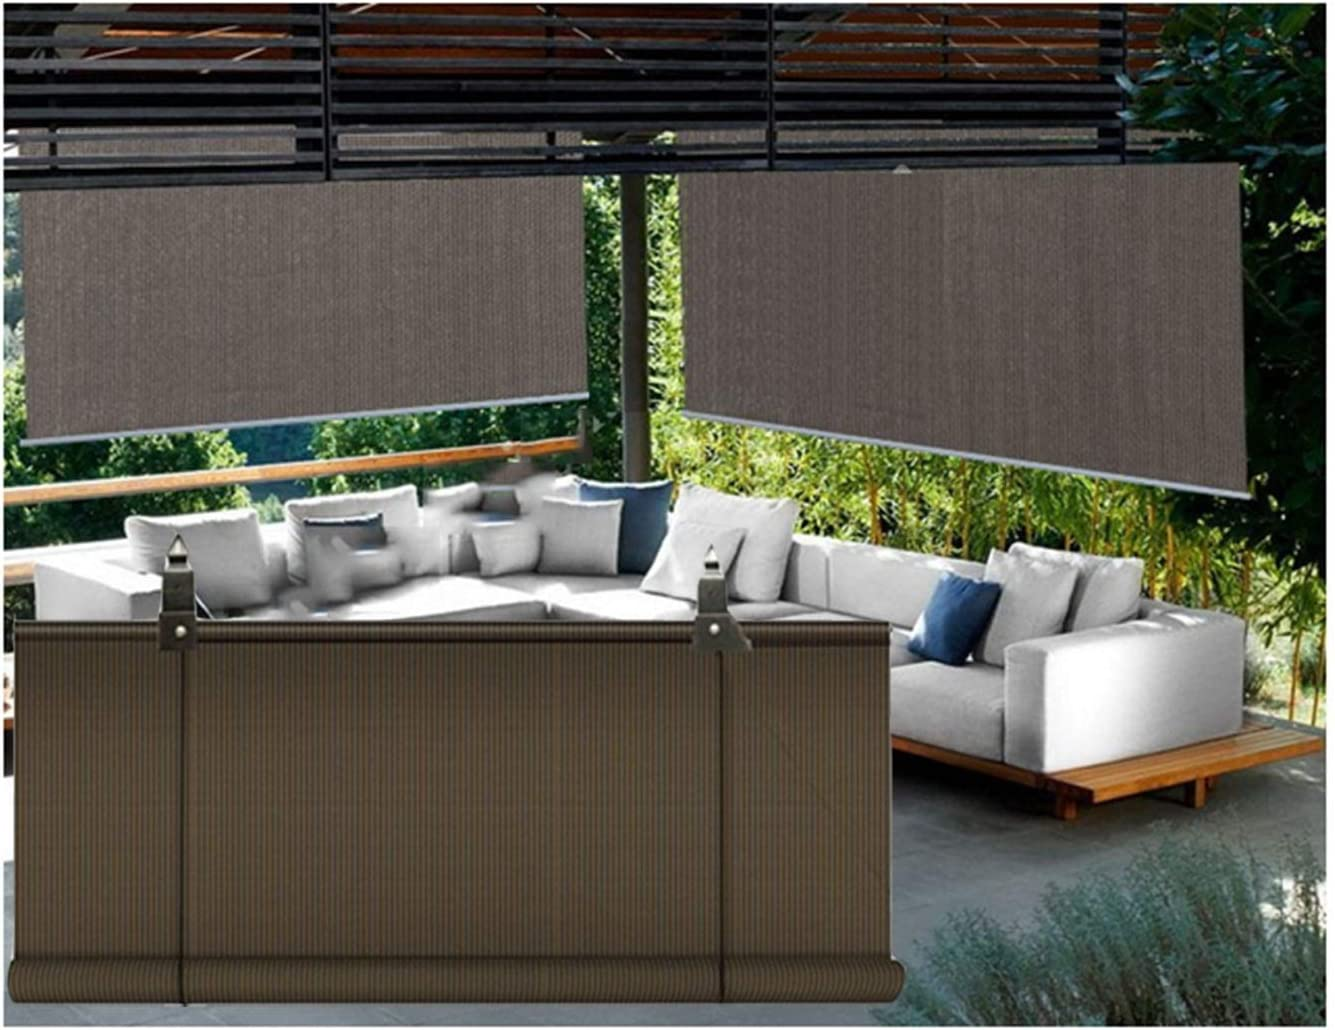 XYUfly20 Household Blackout Max 71% OFF Roller Blinds Bl New Orleans Mall Sunshade Waterproof